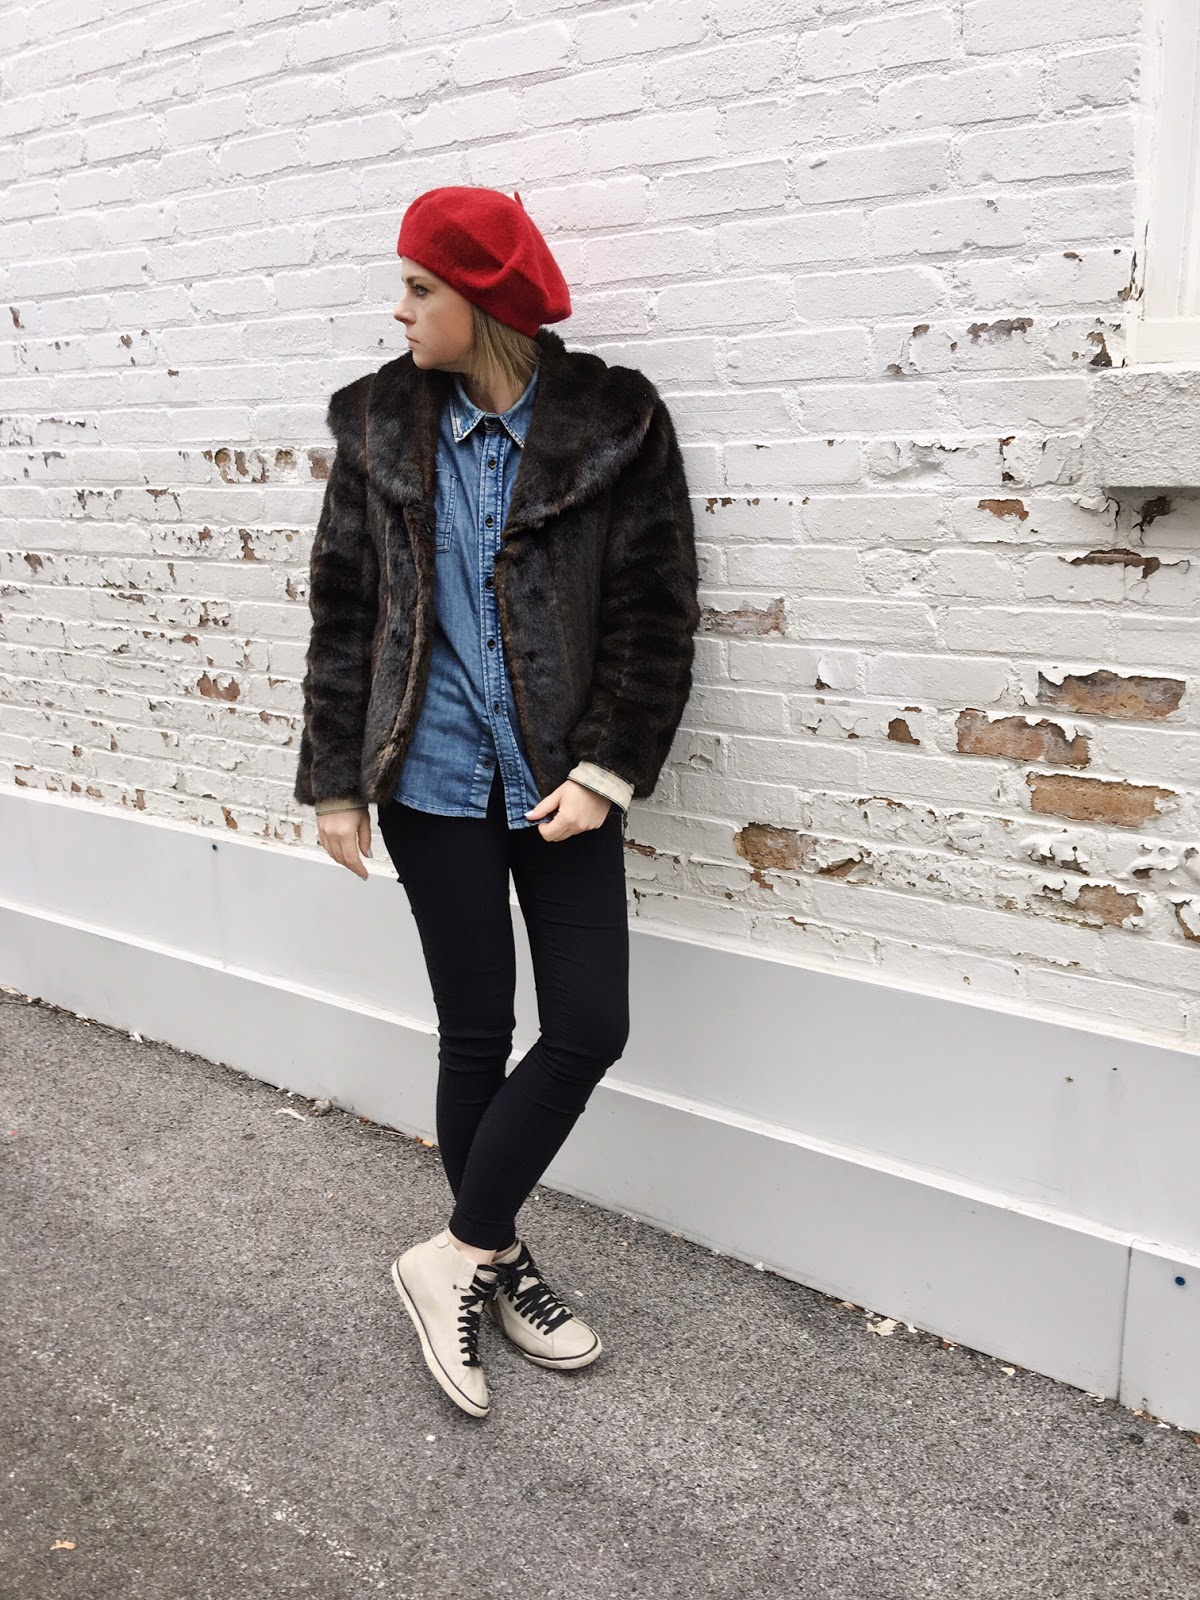 Red beret + a denim shirt